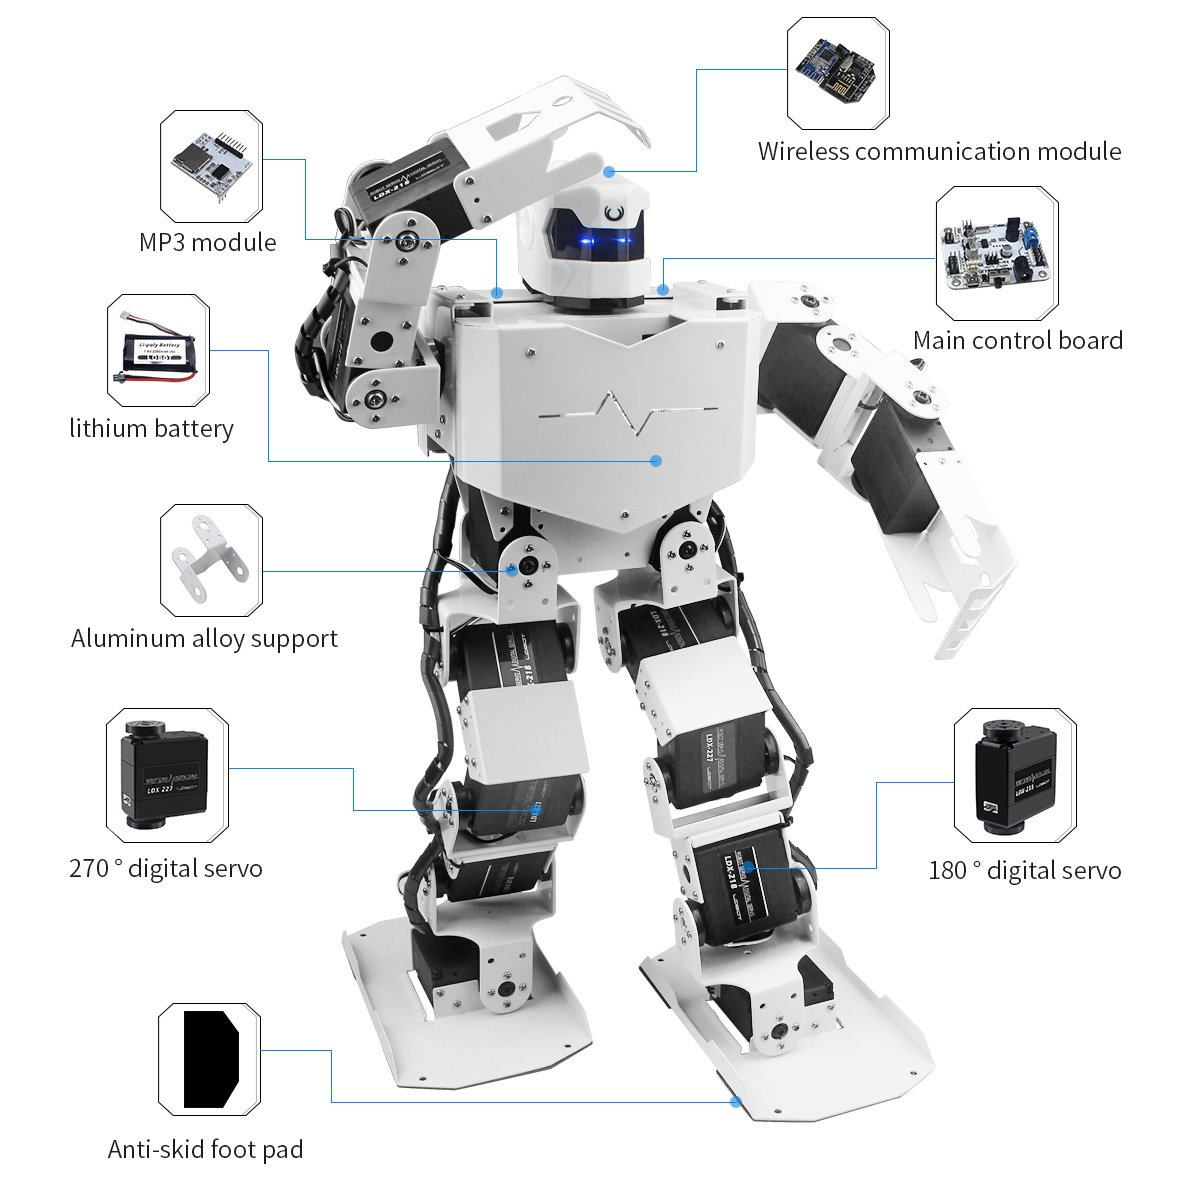 Hiwonder H3S 16DOF Biped Humanoid Robot Kit with Free APP, MP3 Module, Detailed Video Tutorial Support Sing Dance(Assembled) by LewanSoul (Image #2)